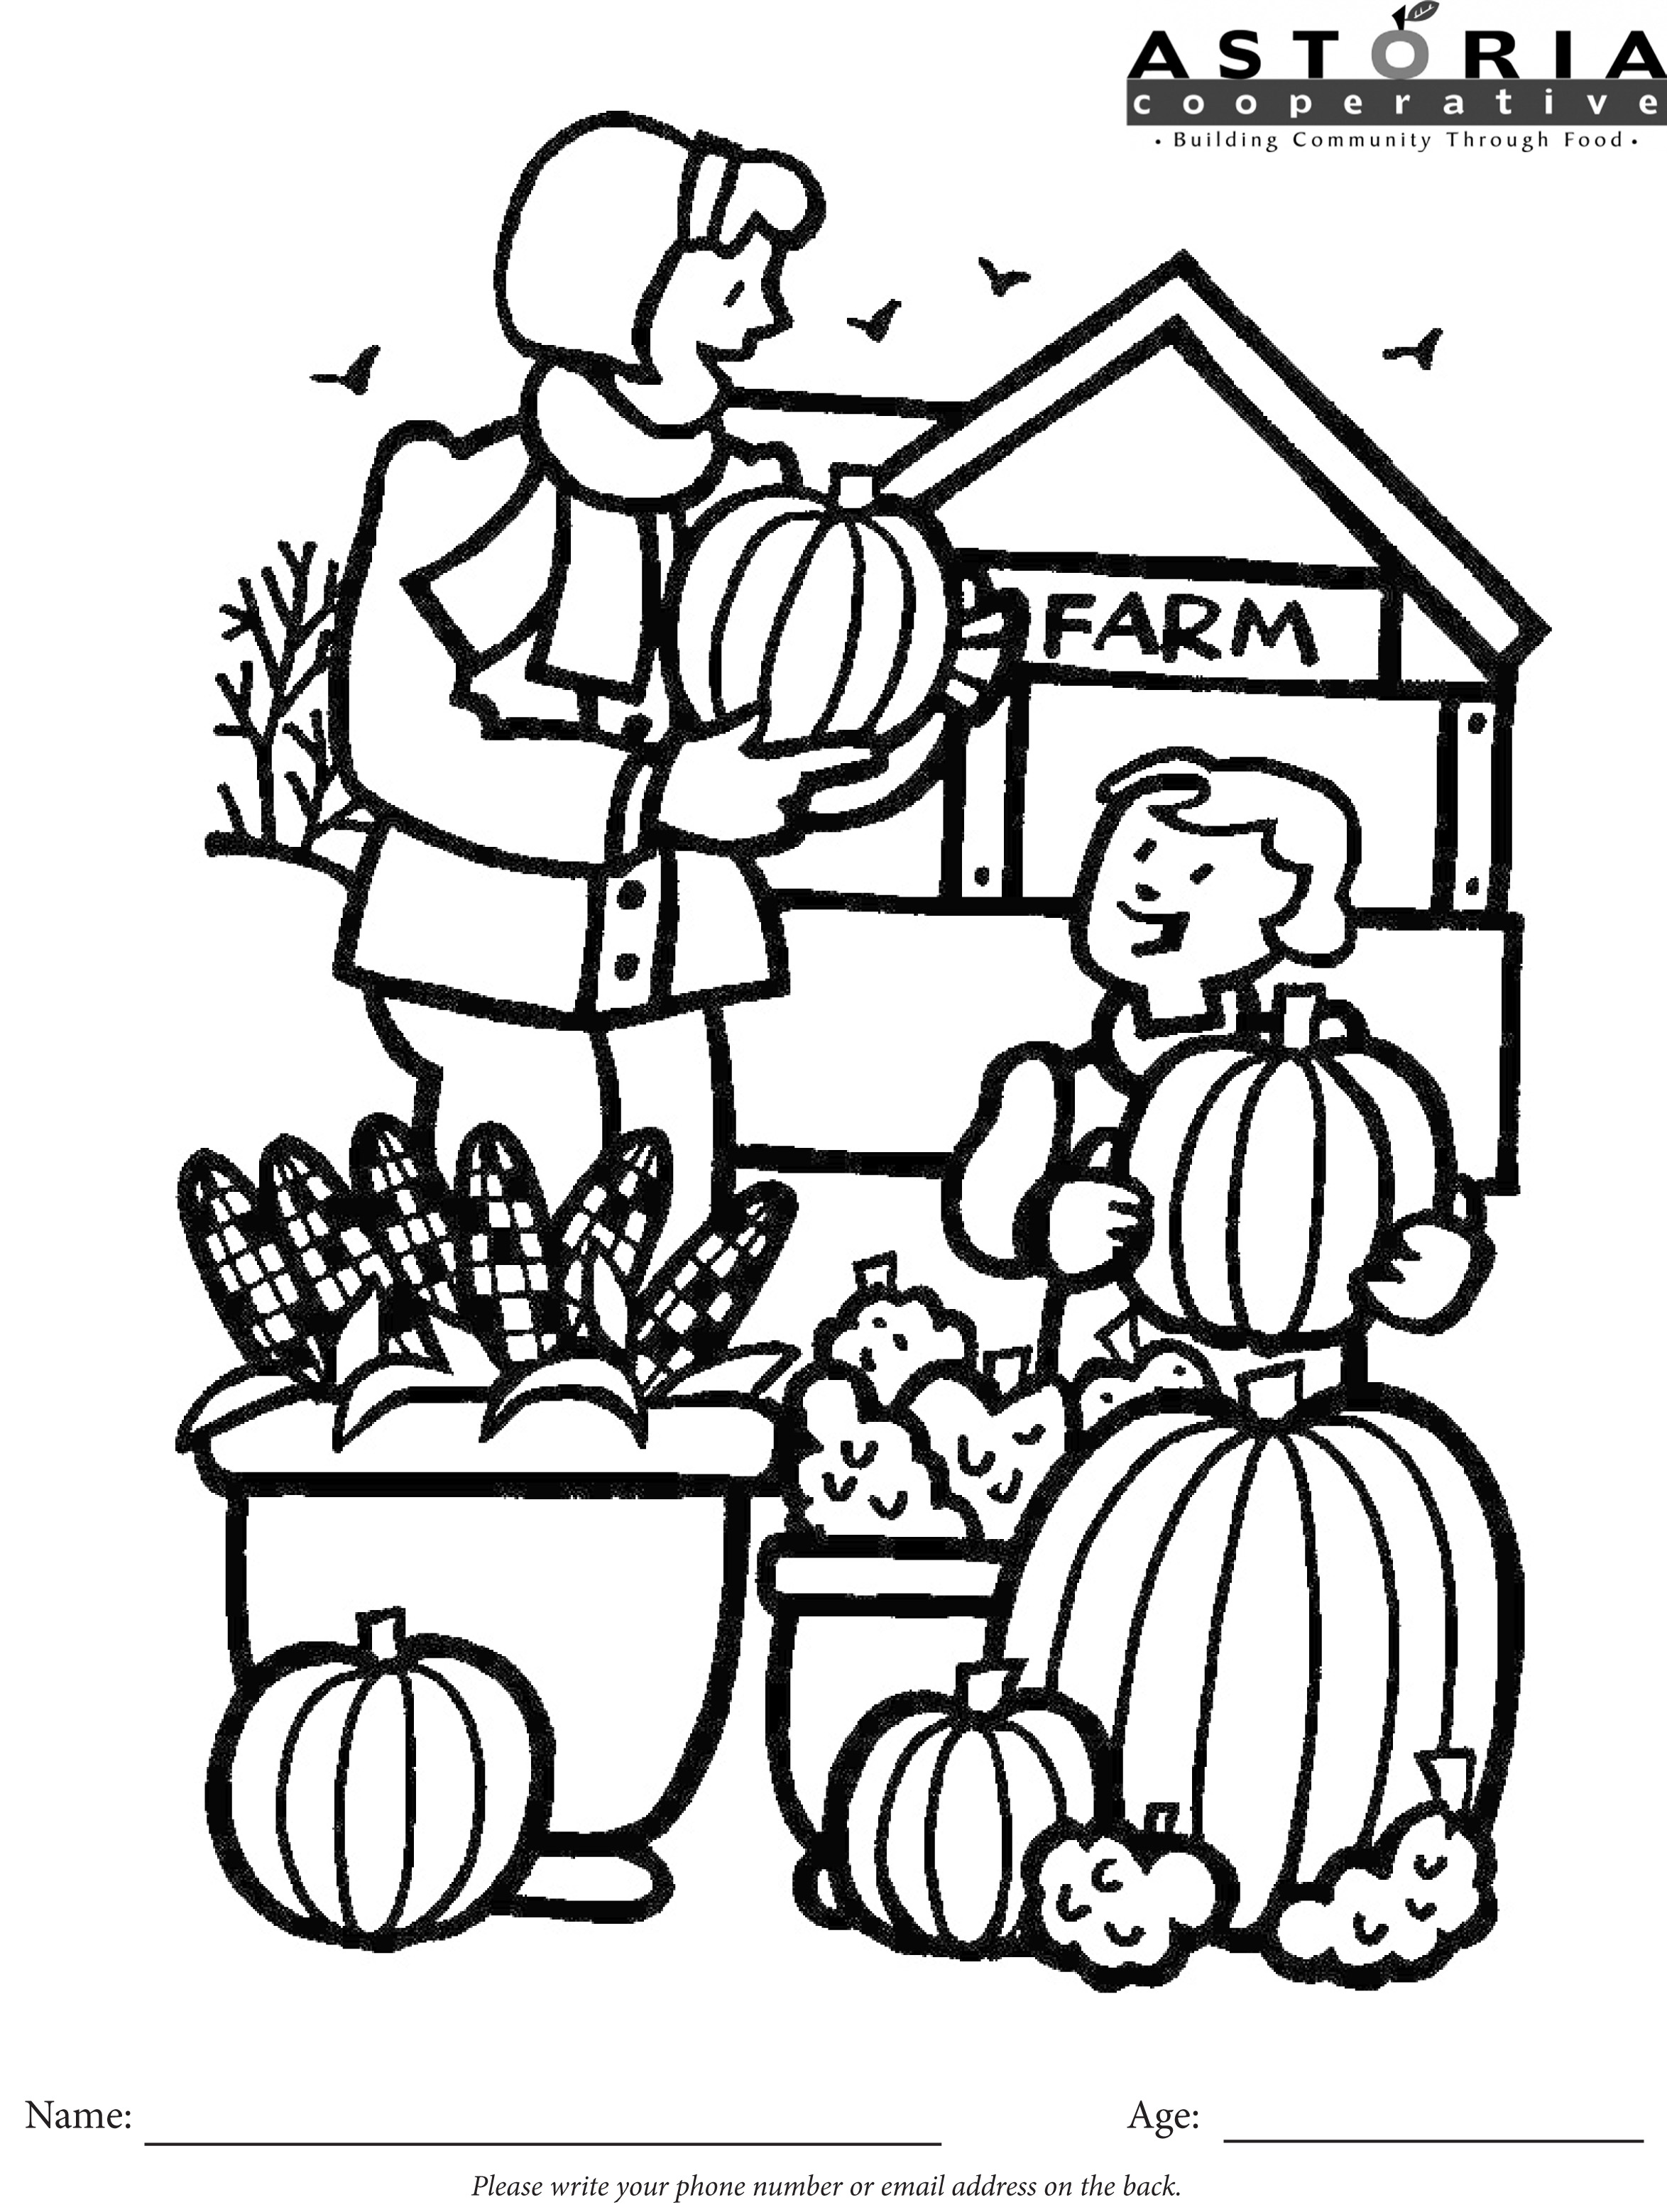 Coloring pages for halloween coloring contest - Halloween Coloring Contest